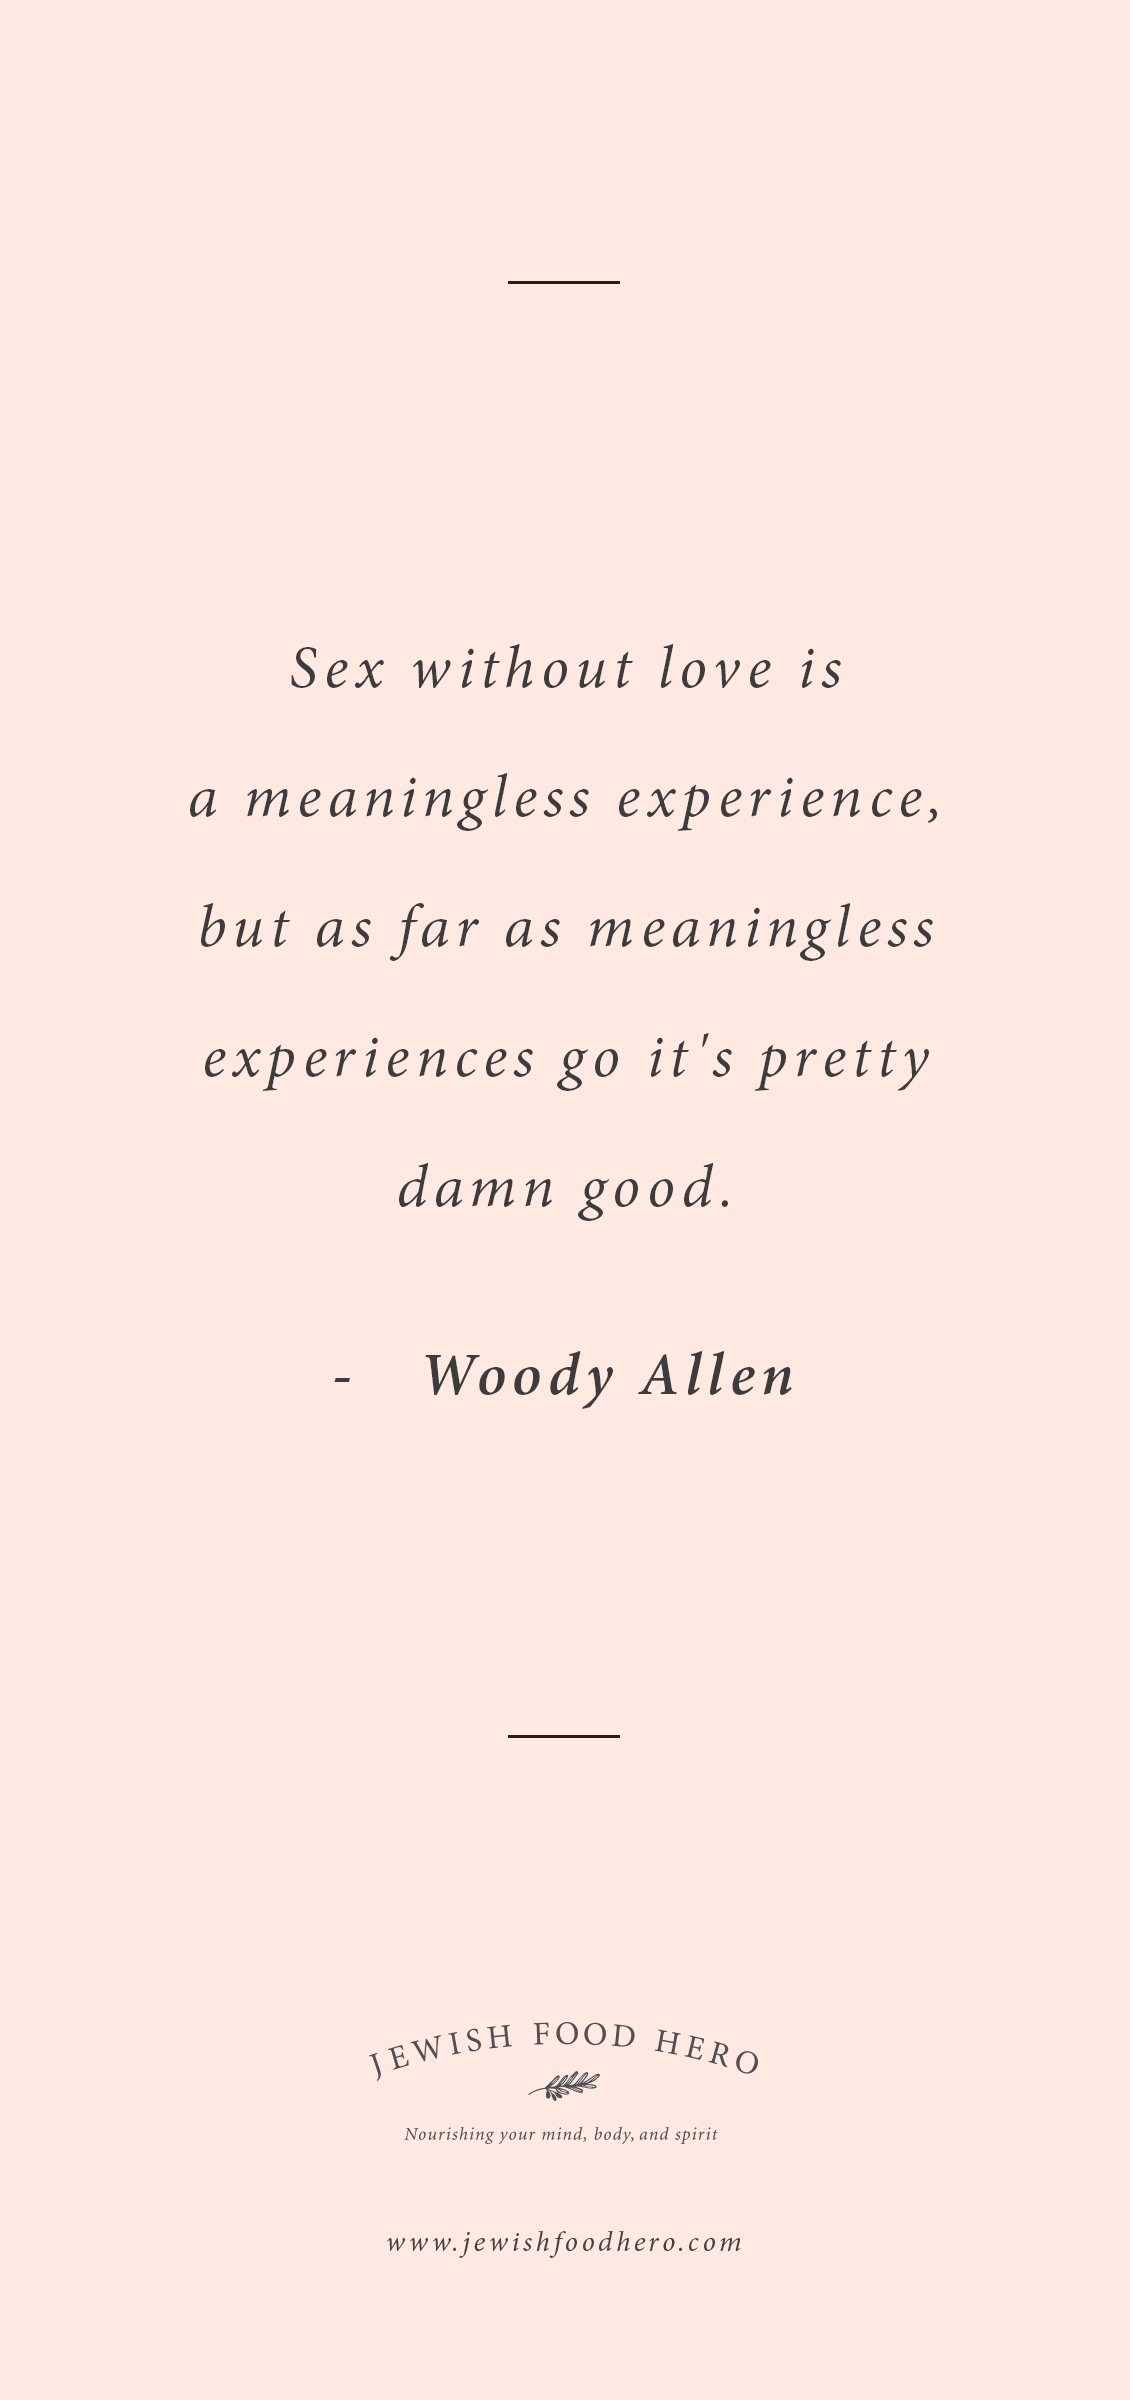 Image of: Peace Woody Allen Quote Wisdom Quotes Jewish Love Quotes That Will Make You Smile Jewish Food Hero